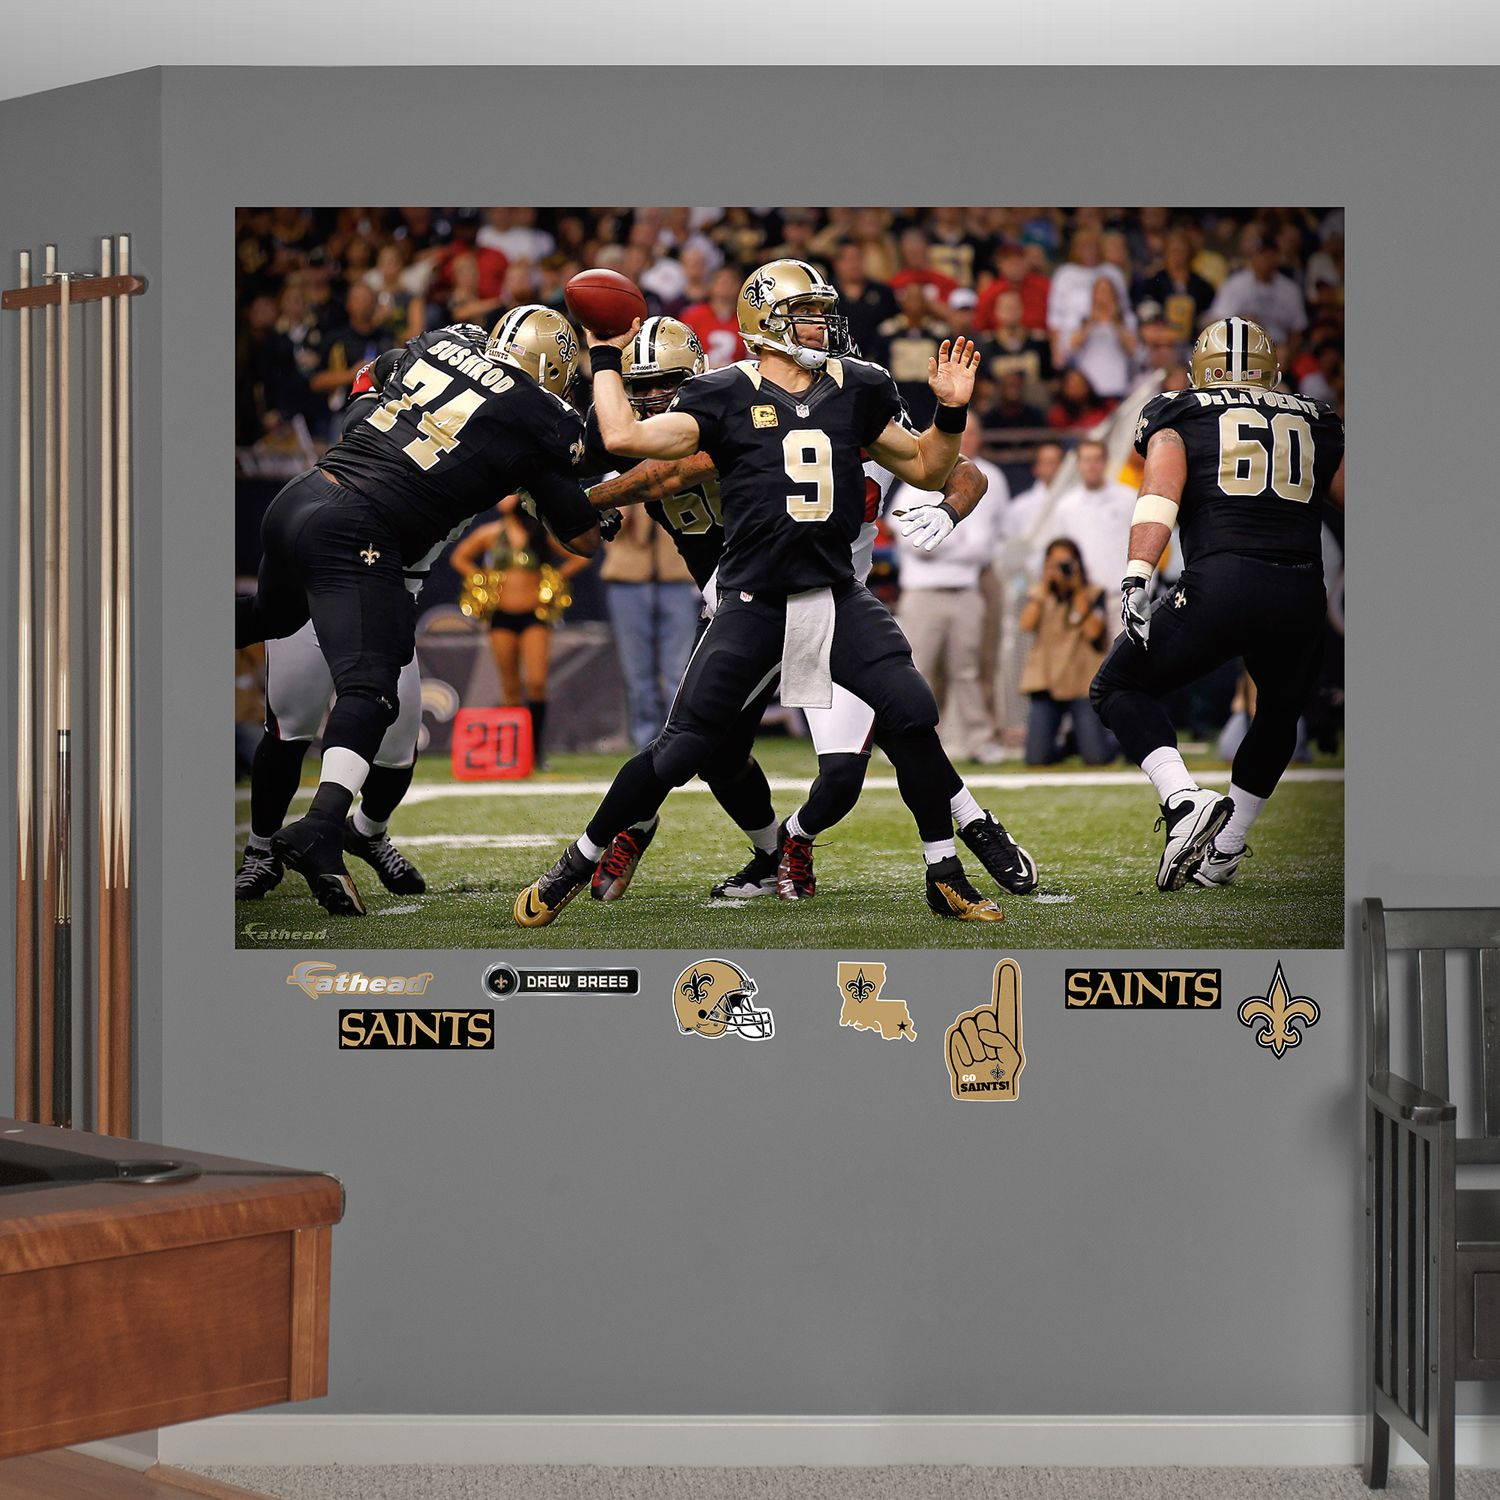 Fathead New Orleans Saints Huddle Mural Wall Decals. Regular & Fathead New Orleans Saints Drew Brees Wall Decals